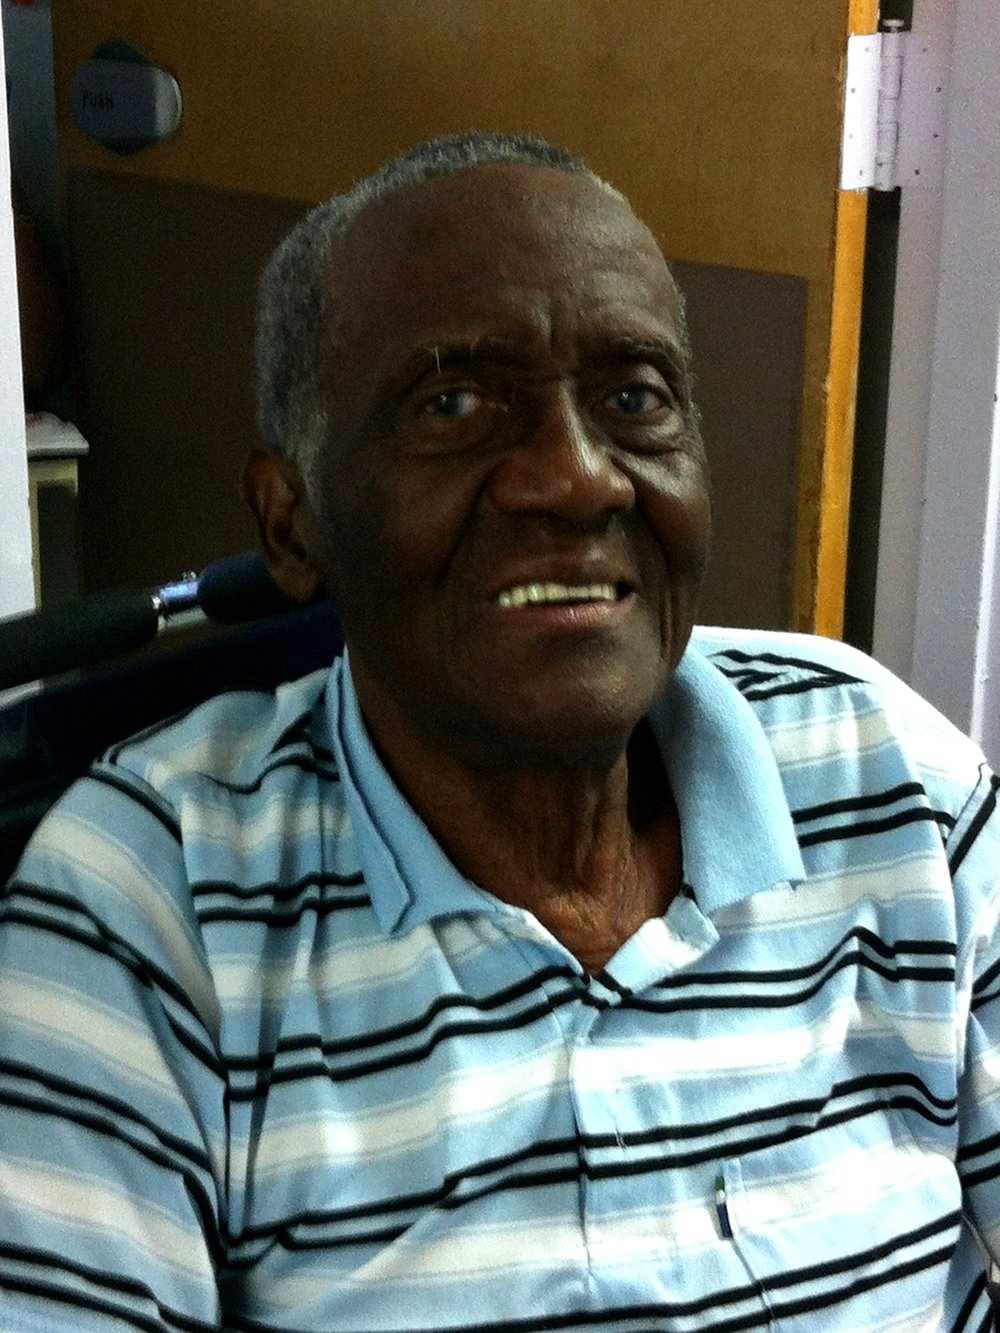 An immigrant from Jamaica, Alvin worked as a tailor before his age and disability prevented him continuing.